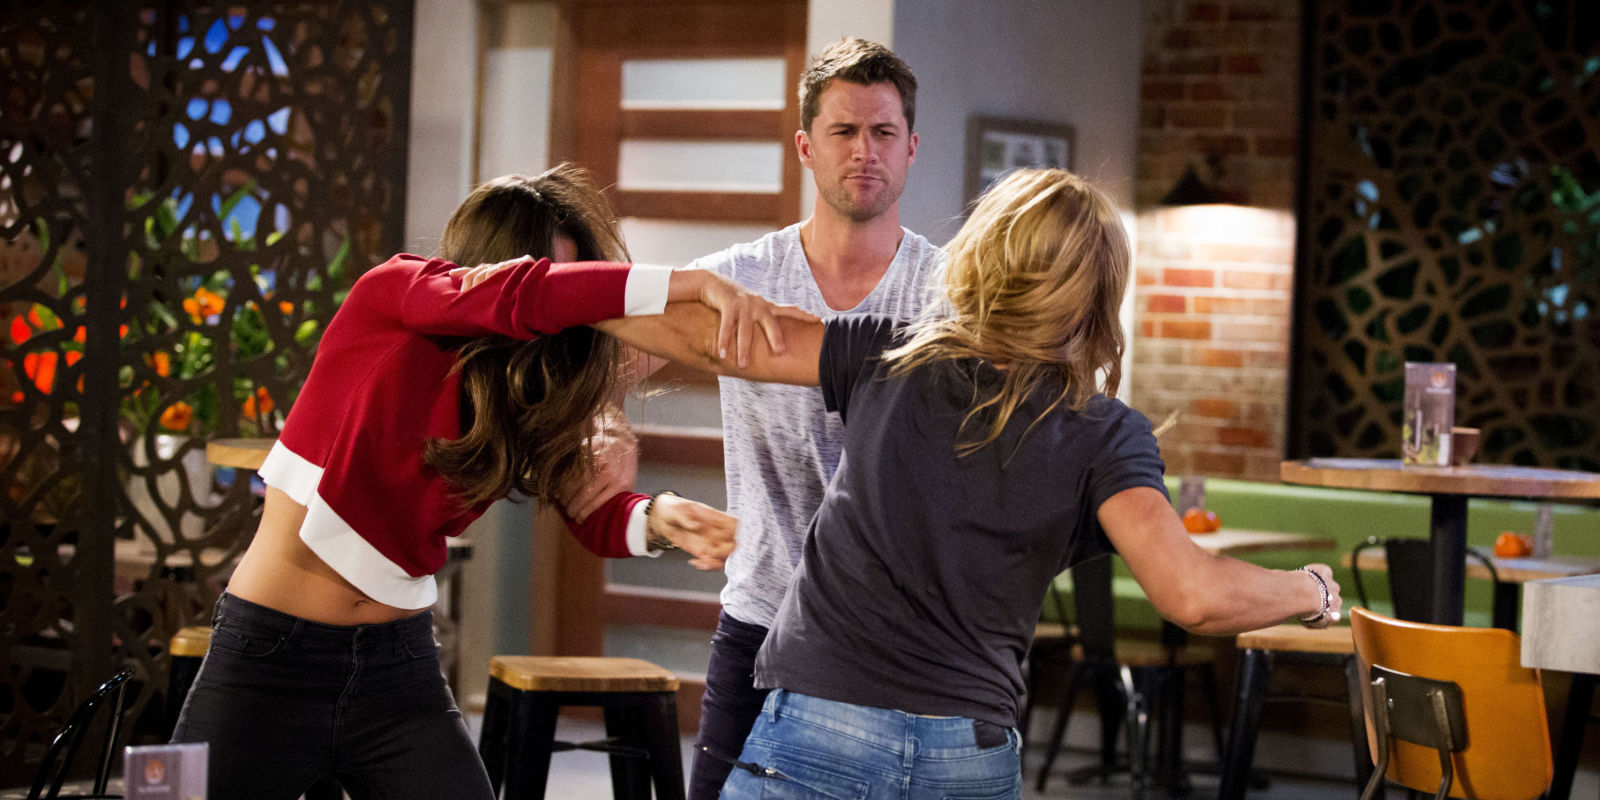 neighbours spoiler paige and steph have a catfight at the